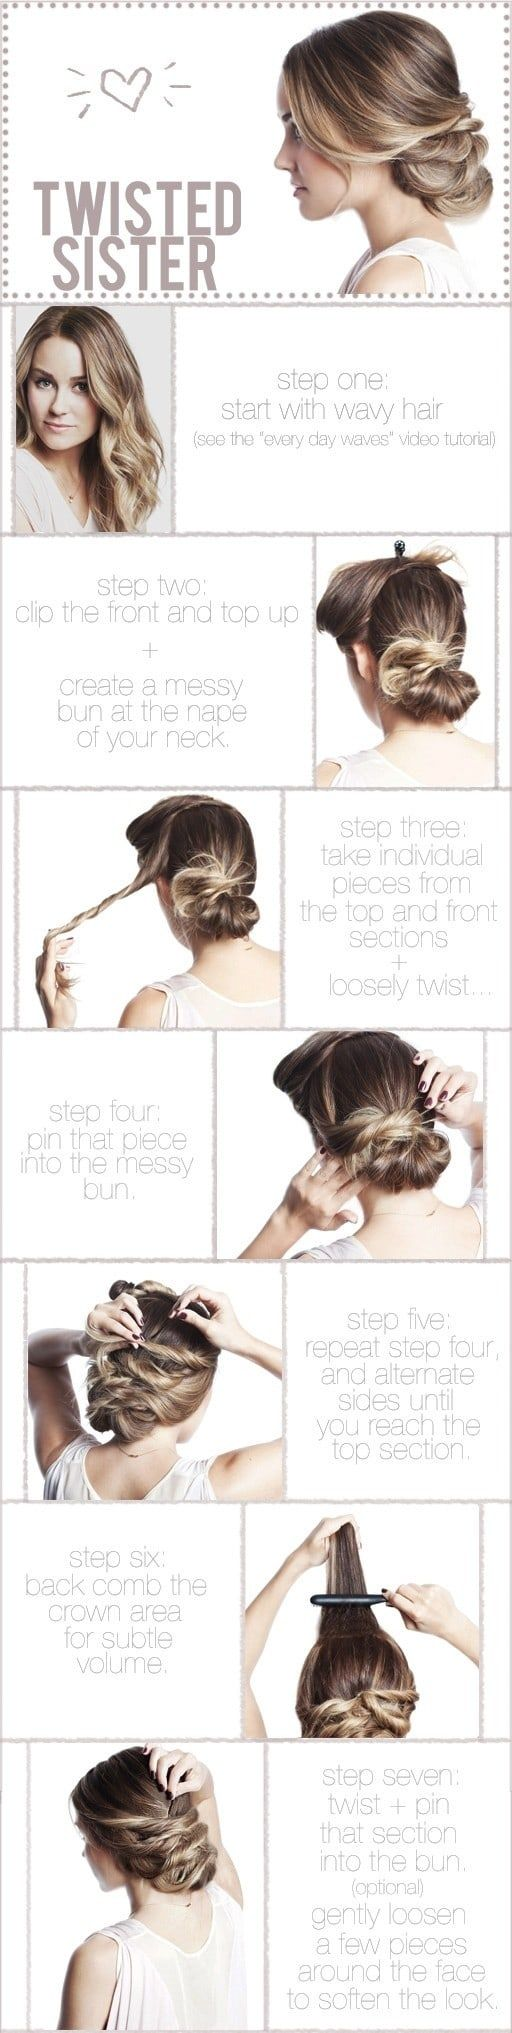 This one's a little complicated, but it's so ideal with an elegant, backless dress for a night time event. Get the full instructions here. You'll need: curling iron, sectioning clips, teasing comb or brush, clear elastic rubber band, bobby pins, and light to medium holding hairspray.